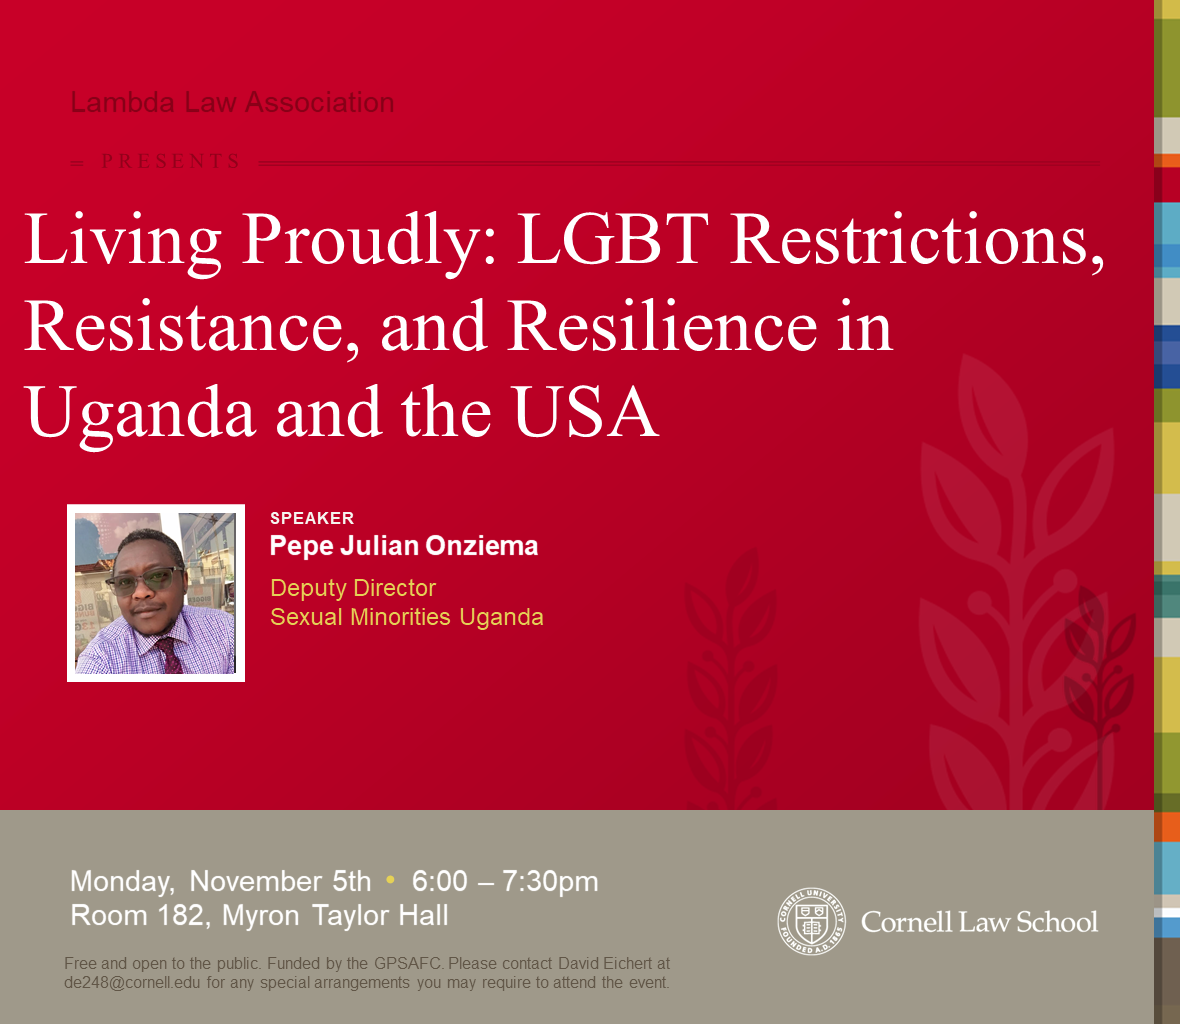 Living Proudly: LGBT Restrictions, Resistance, and Resilience in Uganda and the USA